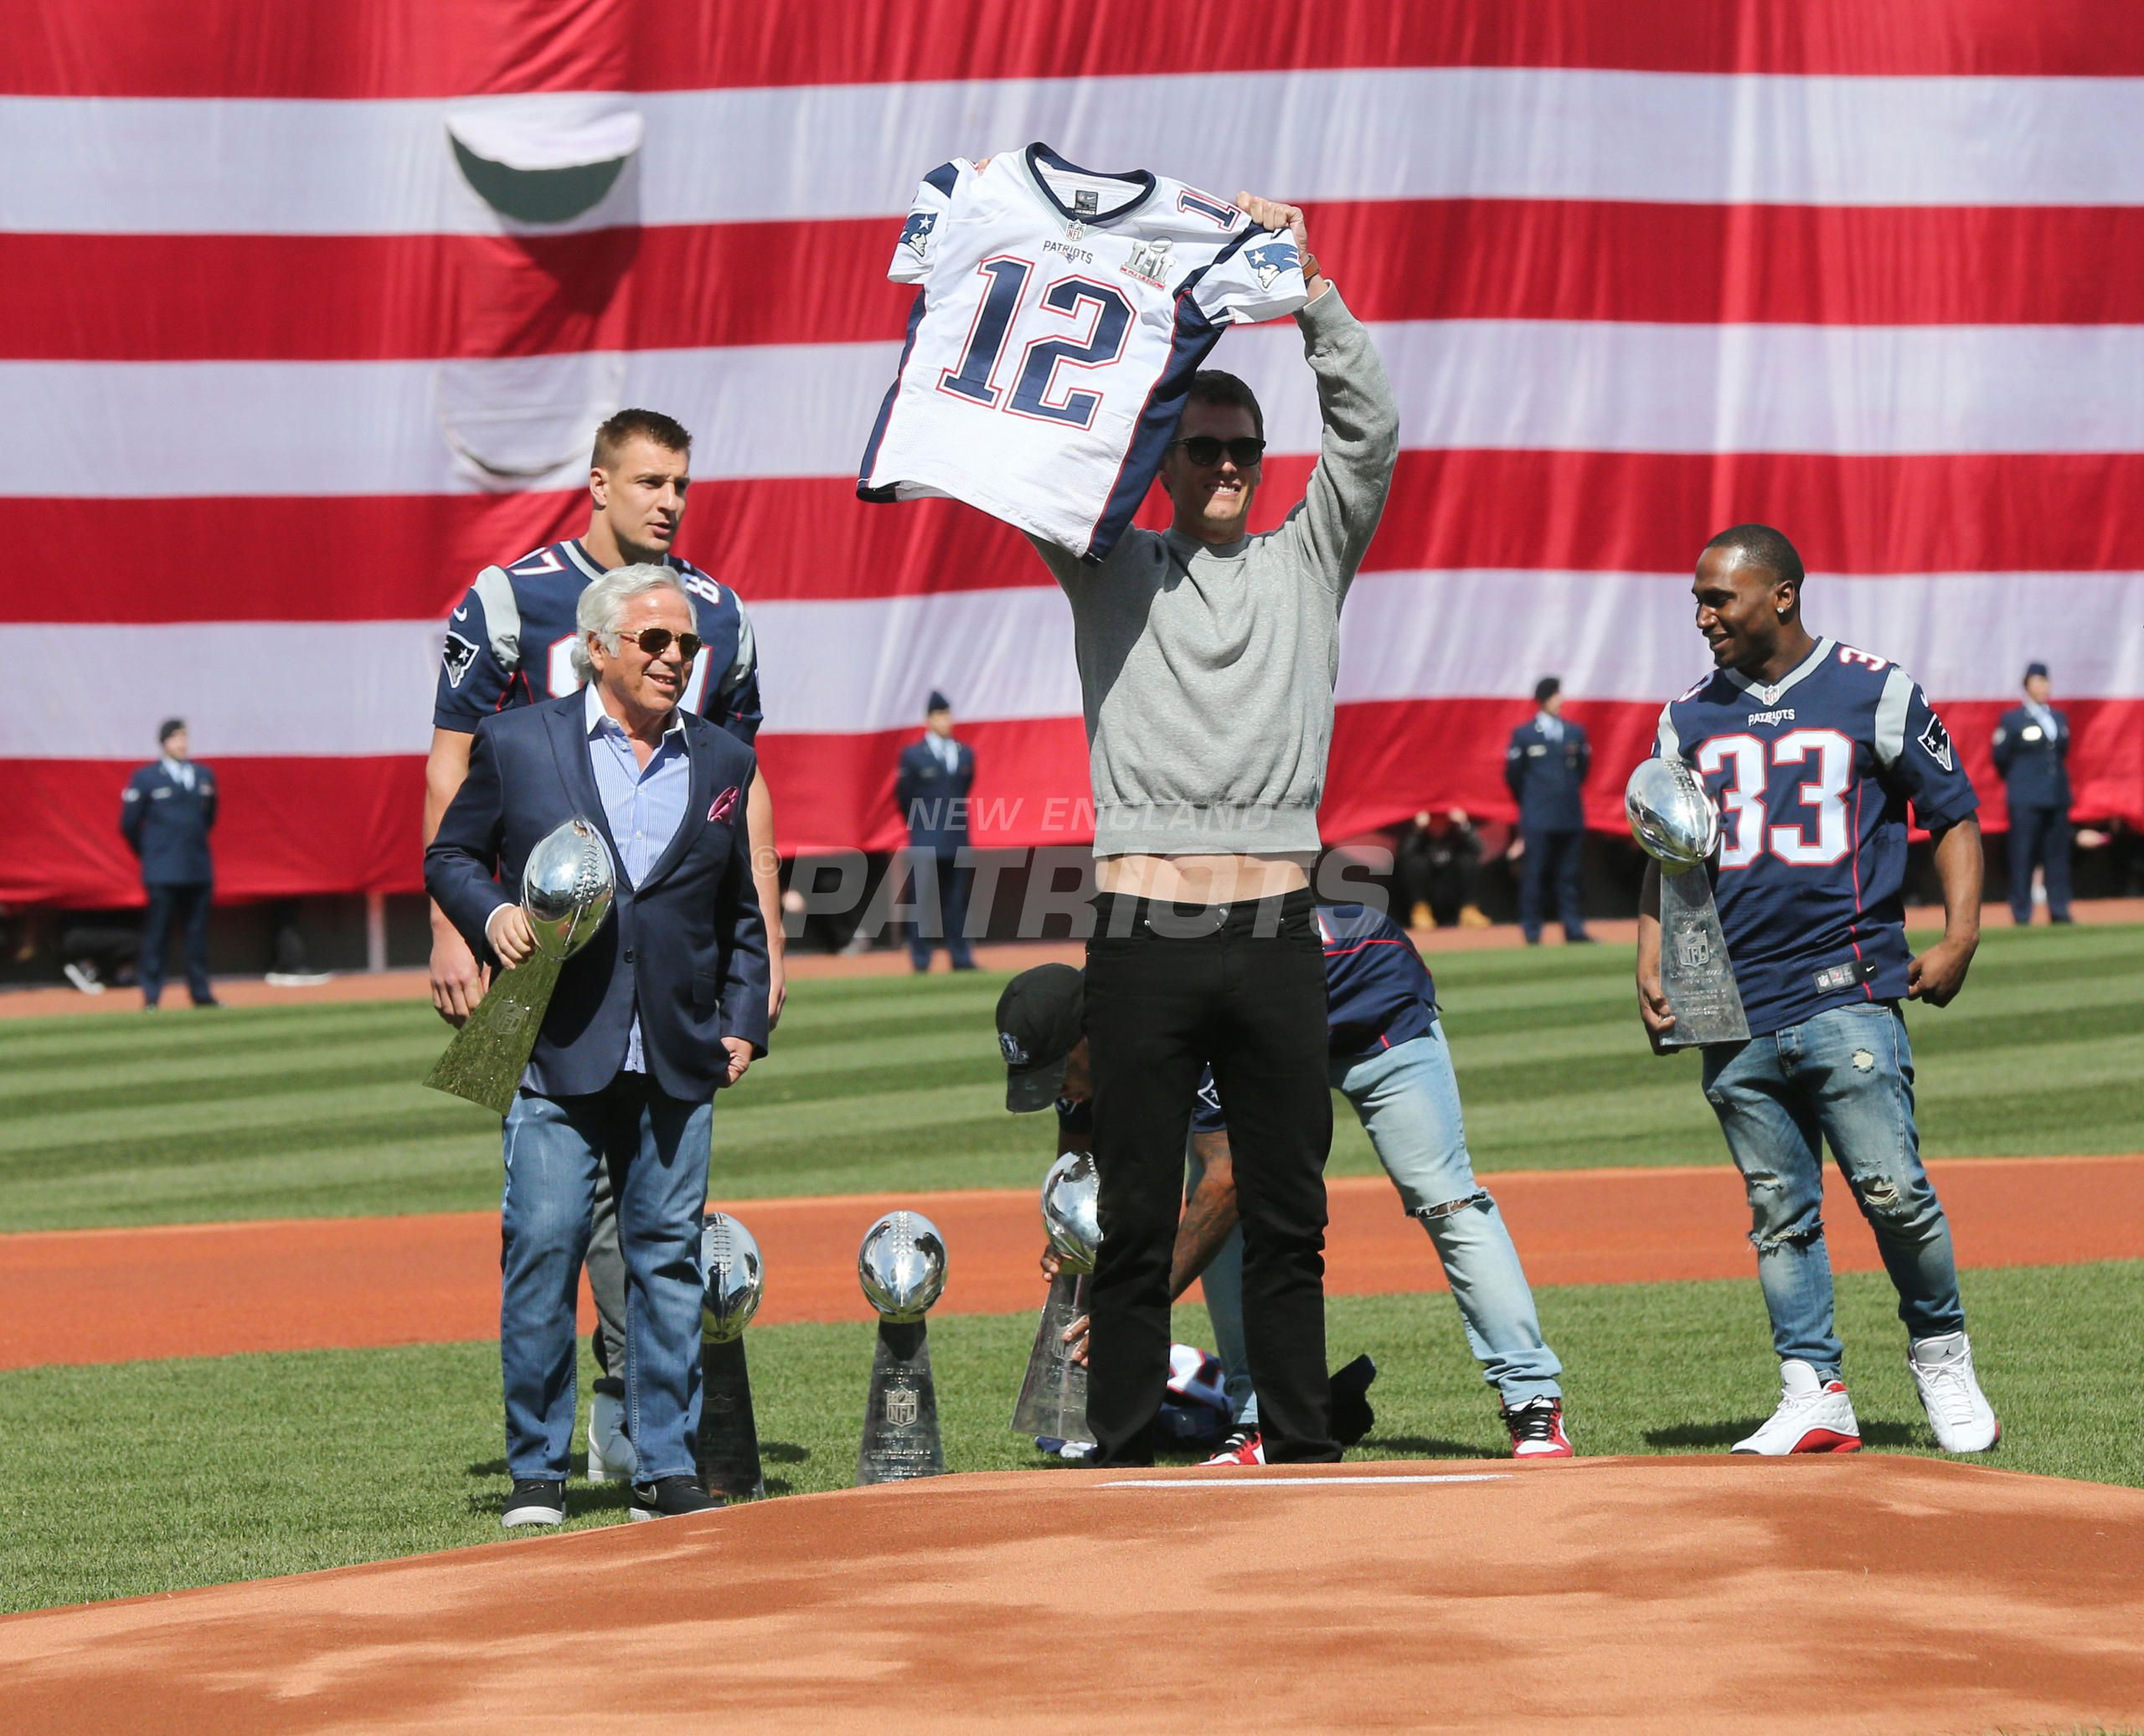 Patriots Honored During Red Sox Opening Day Ceremonies At Fenway Park New England Patriots New England Patriots Football Patriots